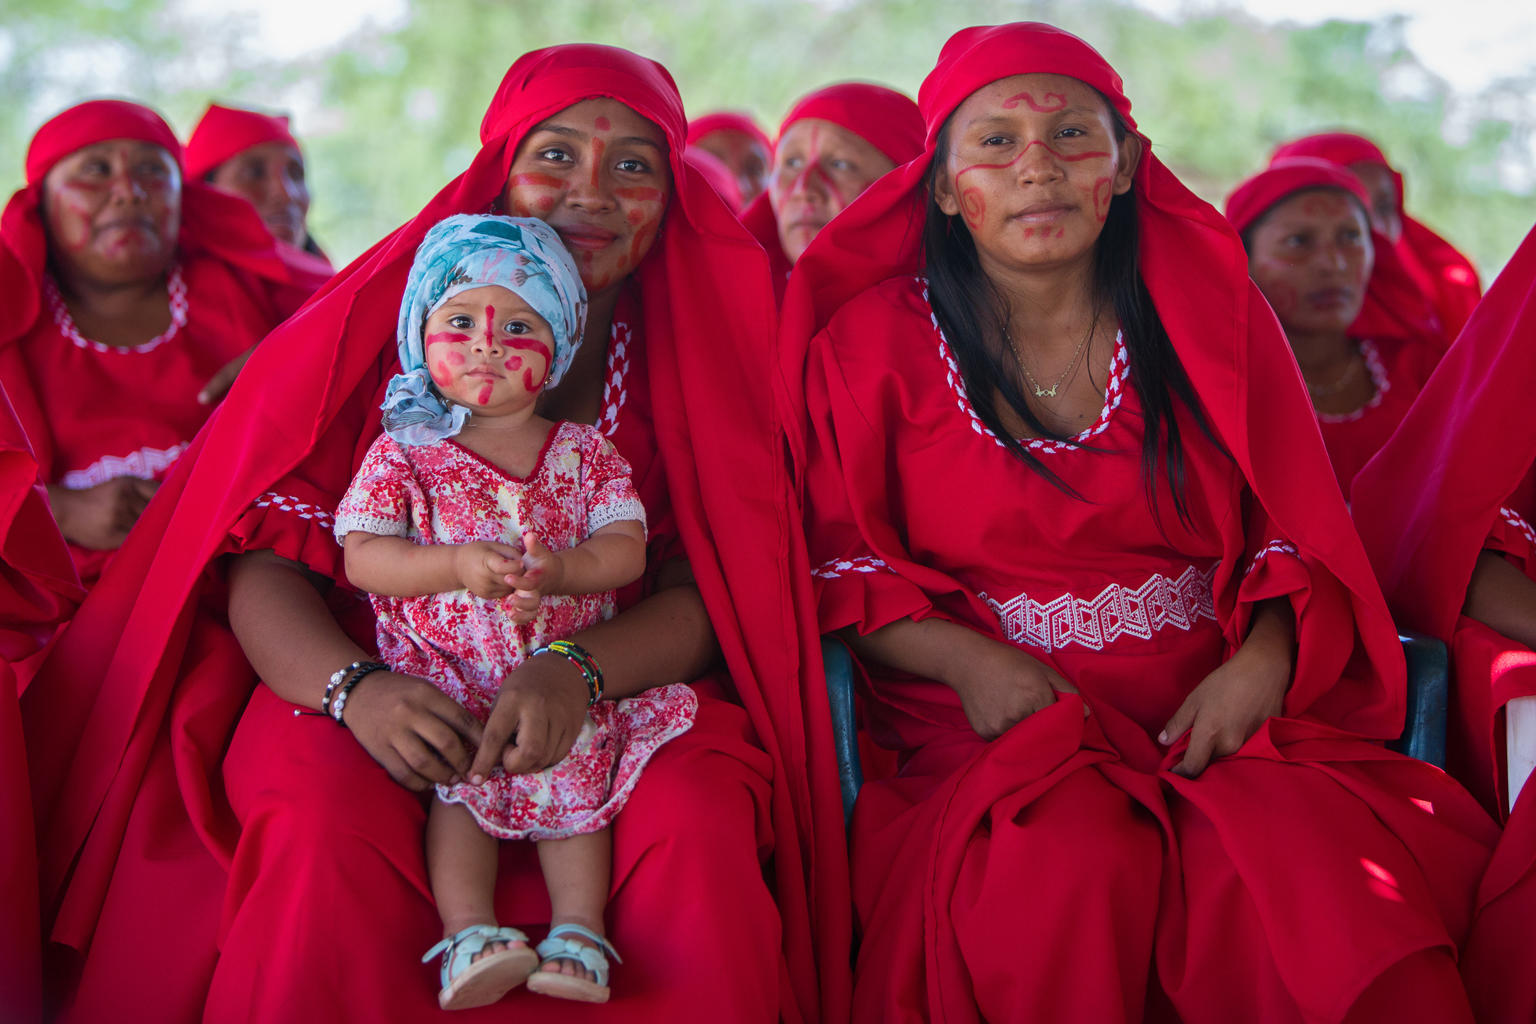 Women in traditional red attire and red face paint. One of them holds an infant girl also in face paint.